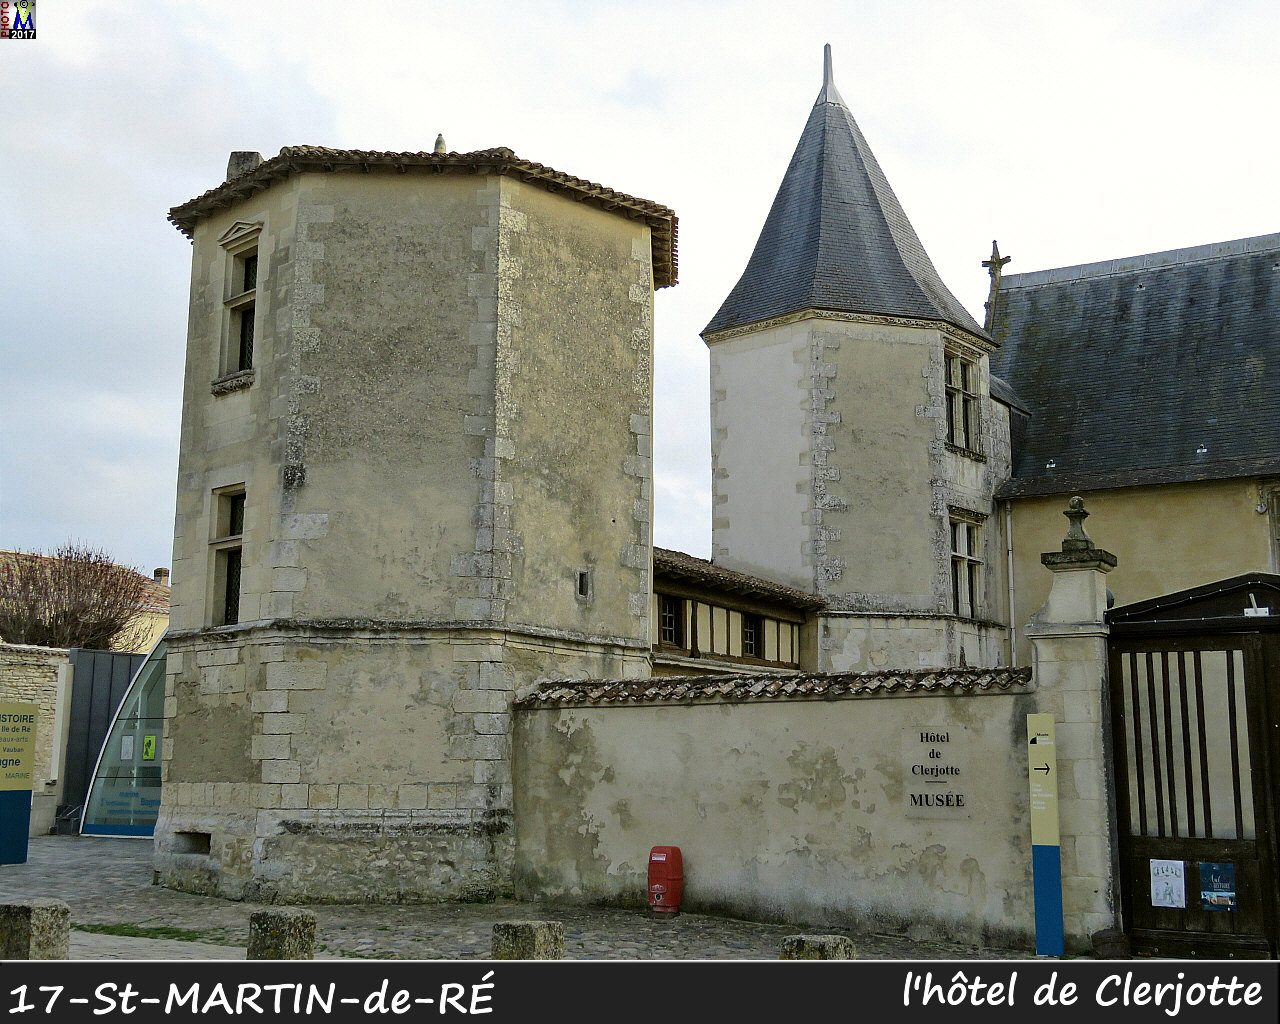 17StMARTIN-RE_clerjotte_1004.jpg